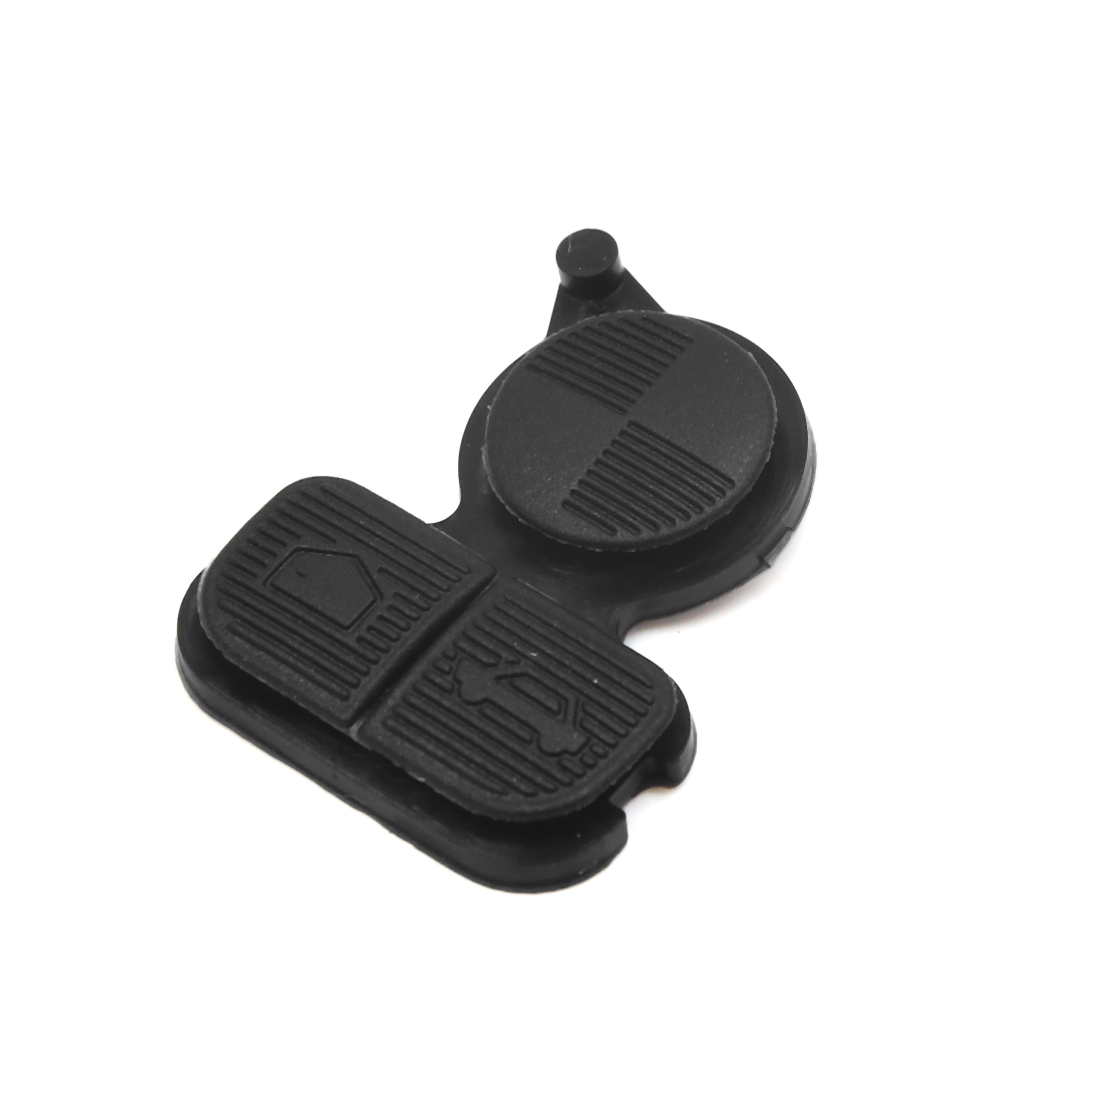 3 Buttons Car Remote Fob Case Insert Rubber Pad Keypad Replacement for BMW